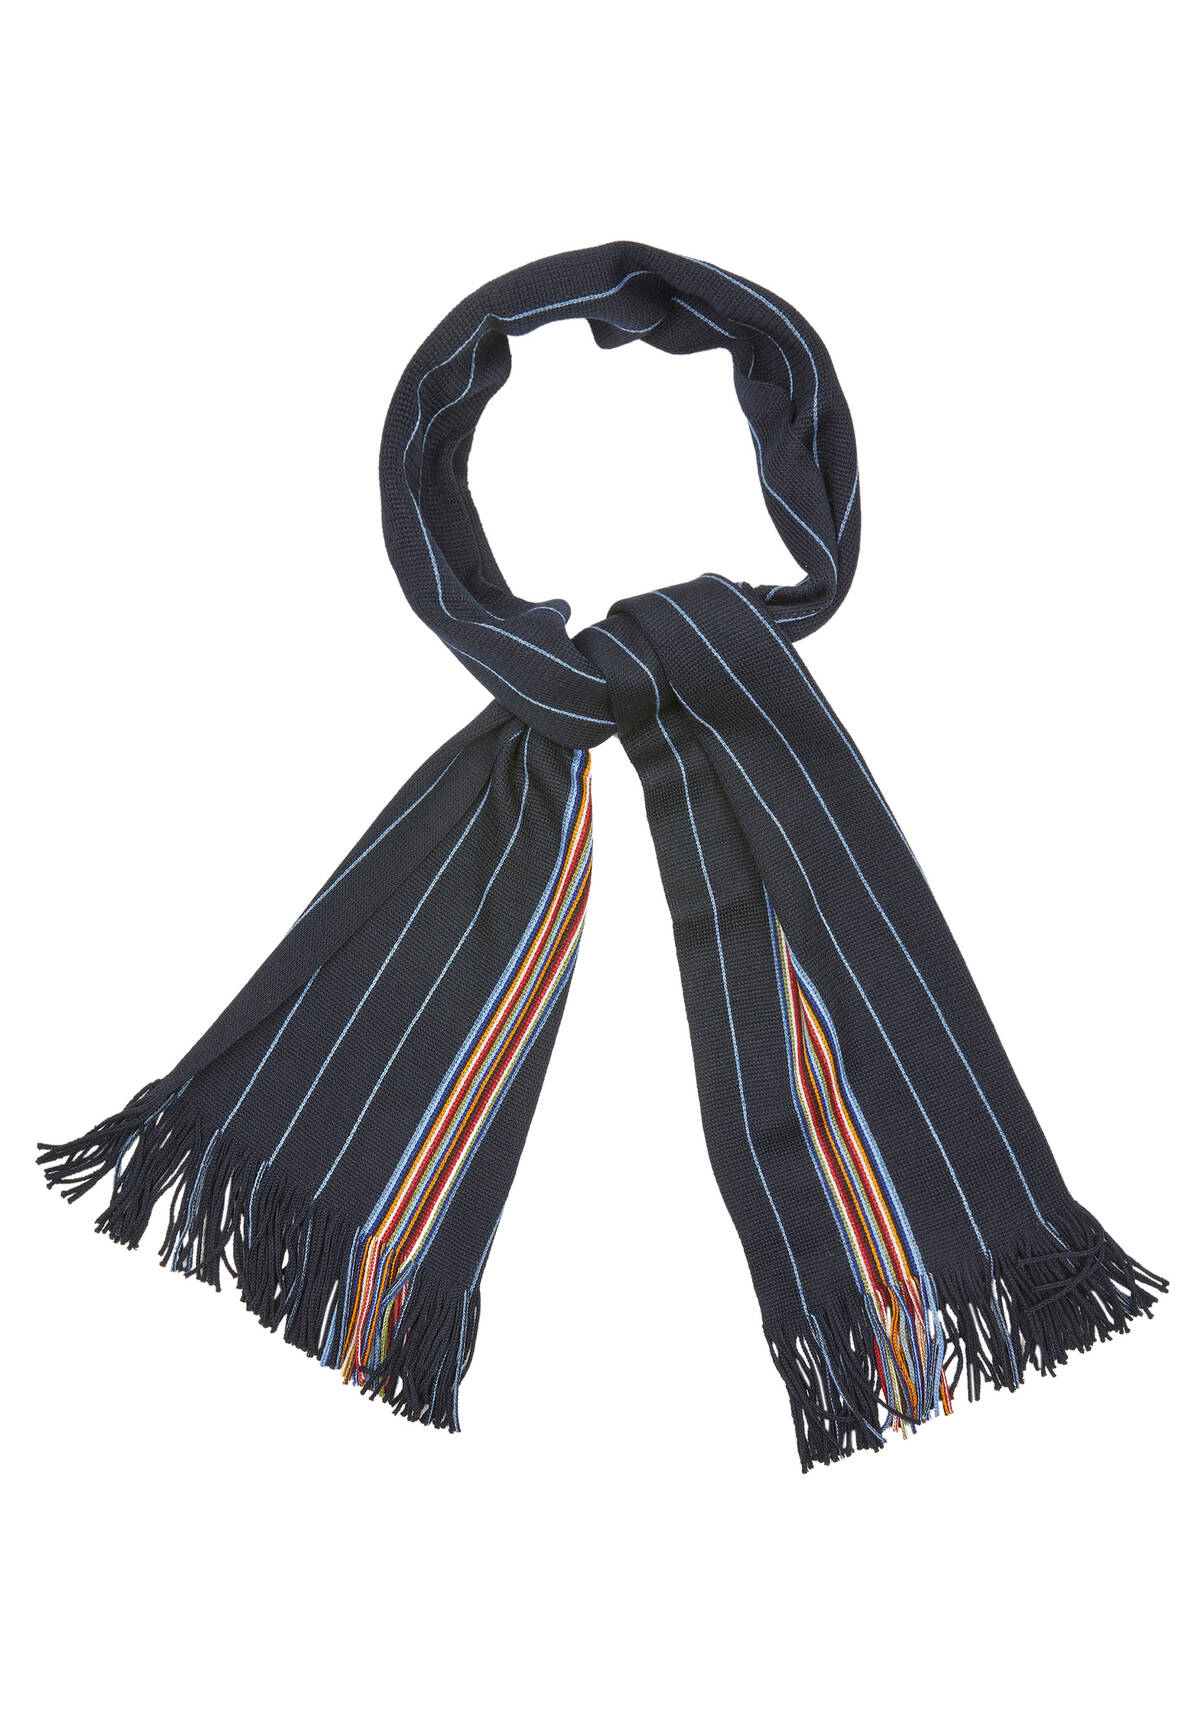 Schal 174 x 25,5 / SCARF STRIPES